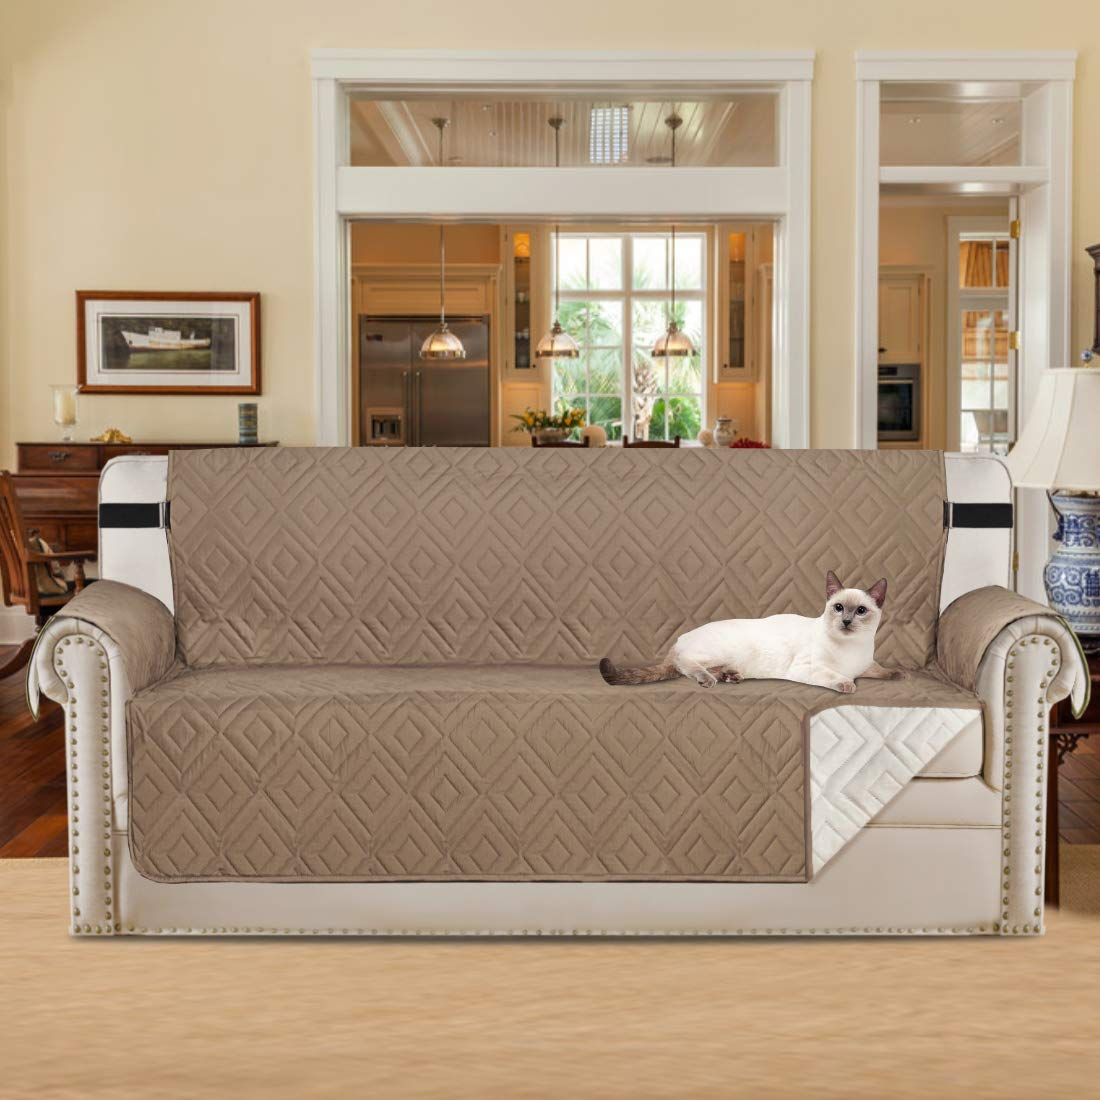 H.VERSAILTEX Upgrade Deluxe Reversible Quilted Furniture Protector and Pet Protector, Perfect for Families with Pets and Kids, 75 inch x 110 inch (Sofa -Taupe/Beige)